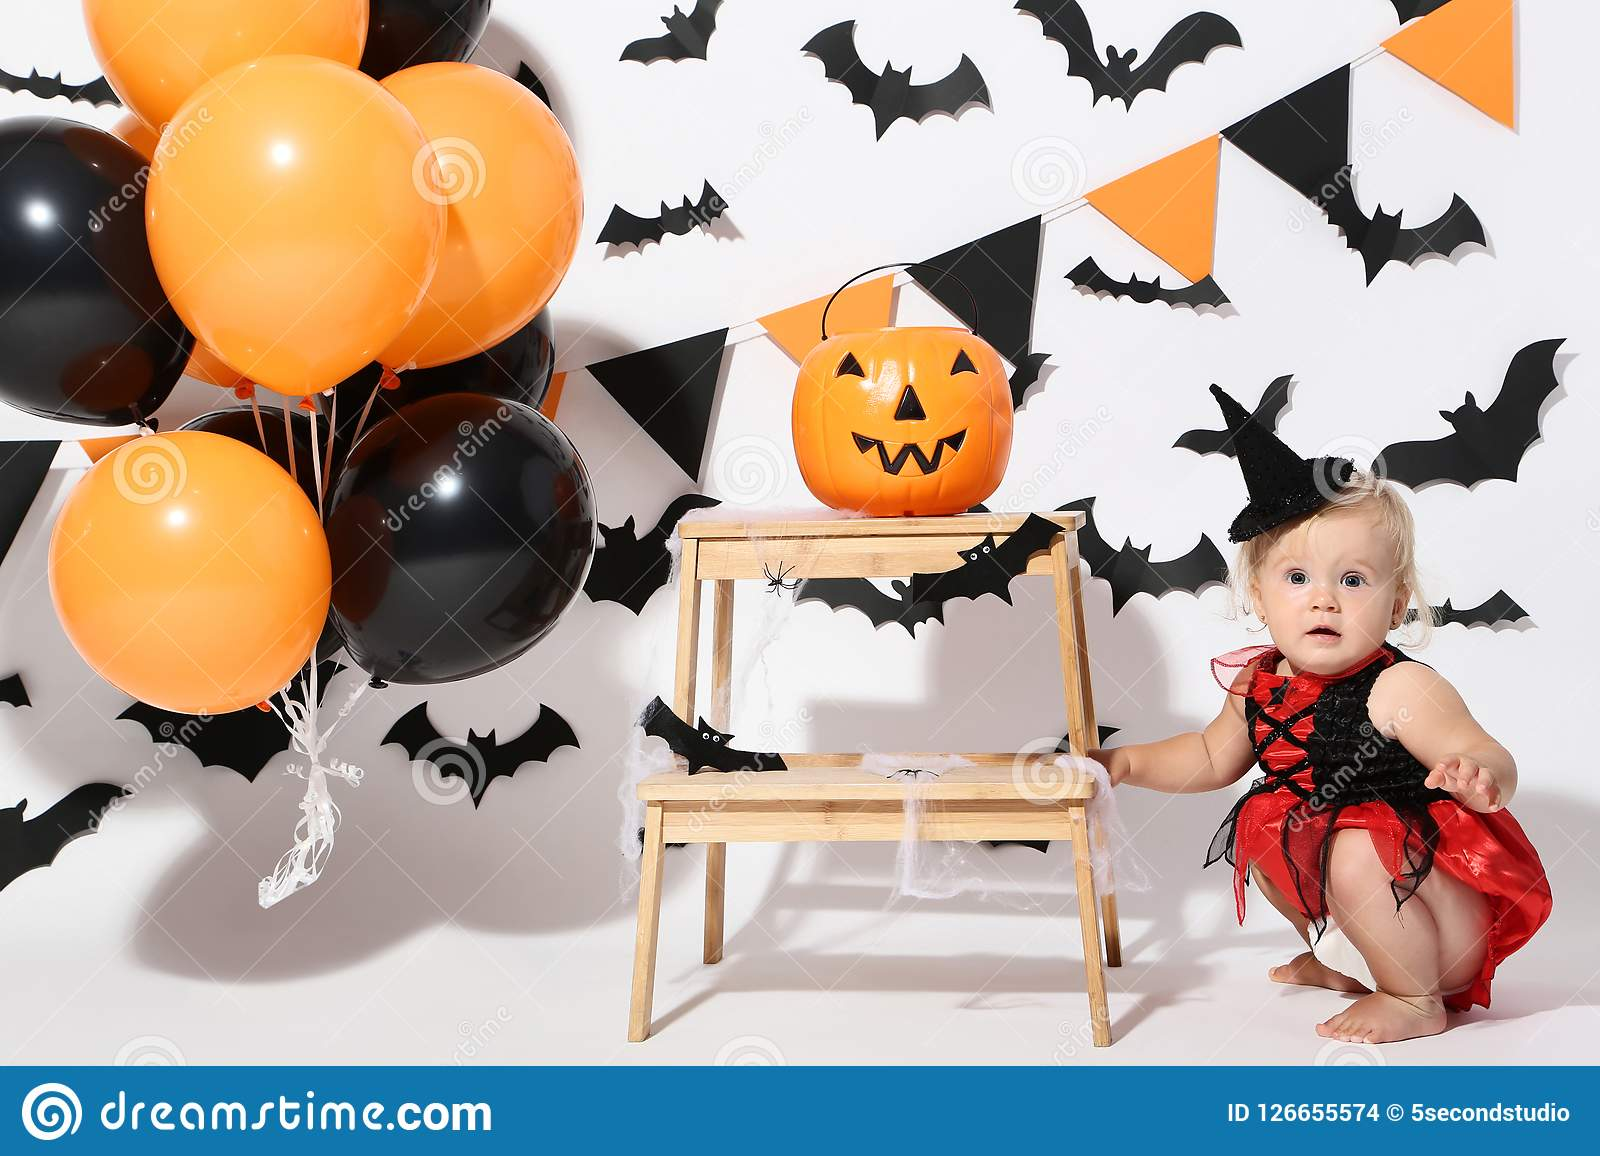 baby girl in halloween costume stock photo - image of child, fashion